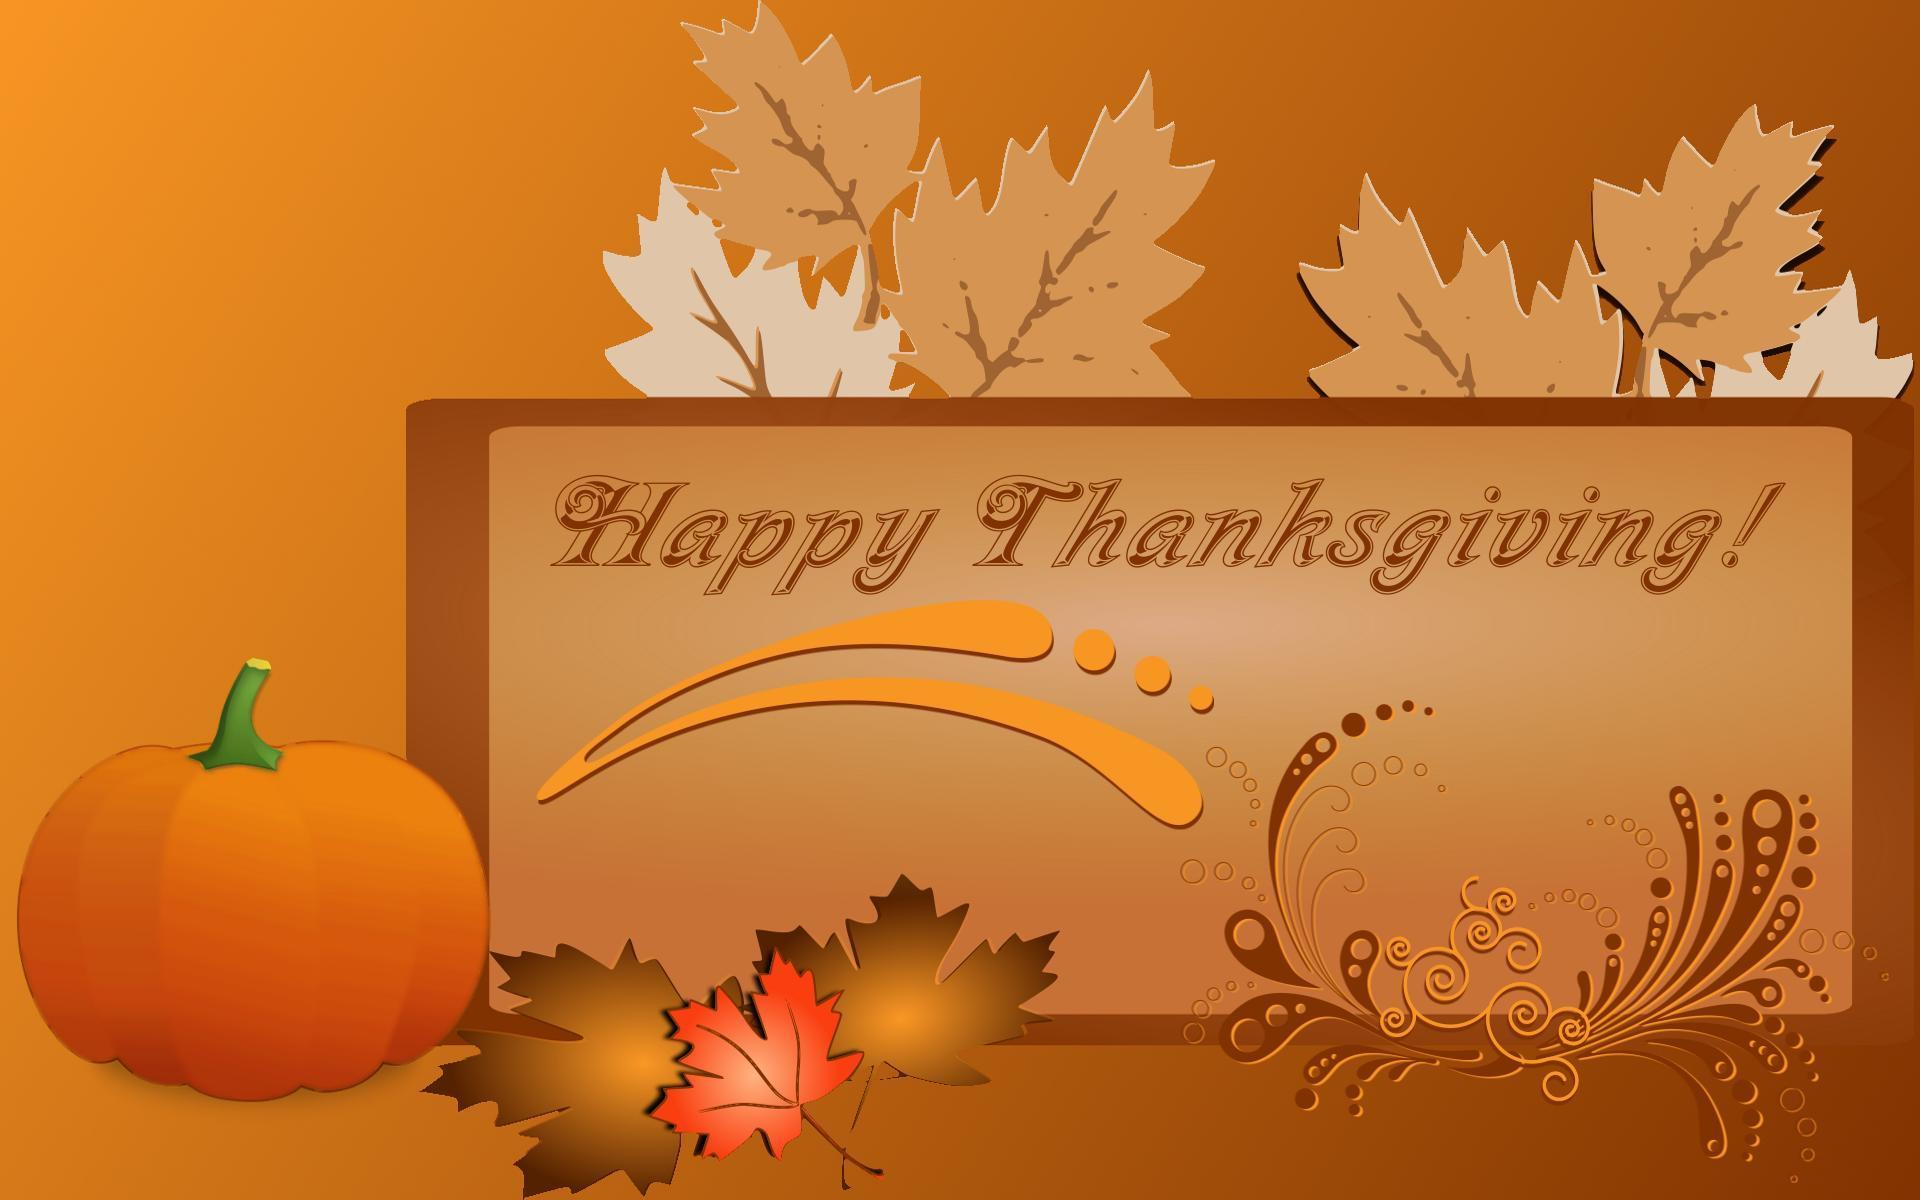 Related Pictures Animated Wallpapers Flower And Gift Thanksgiving